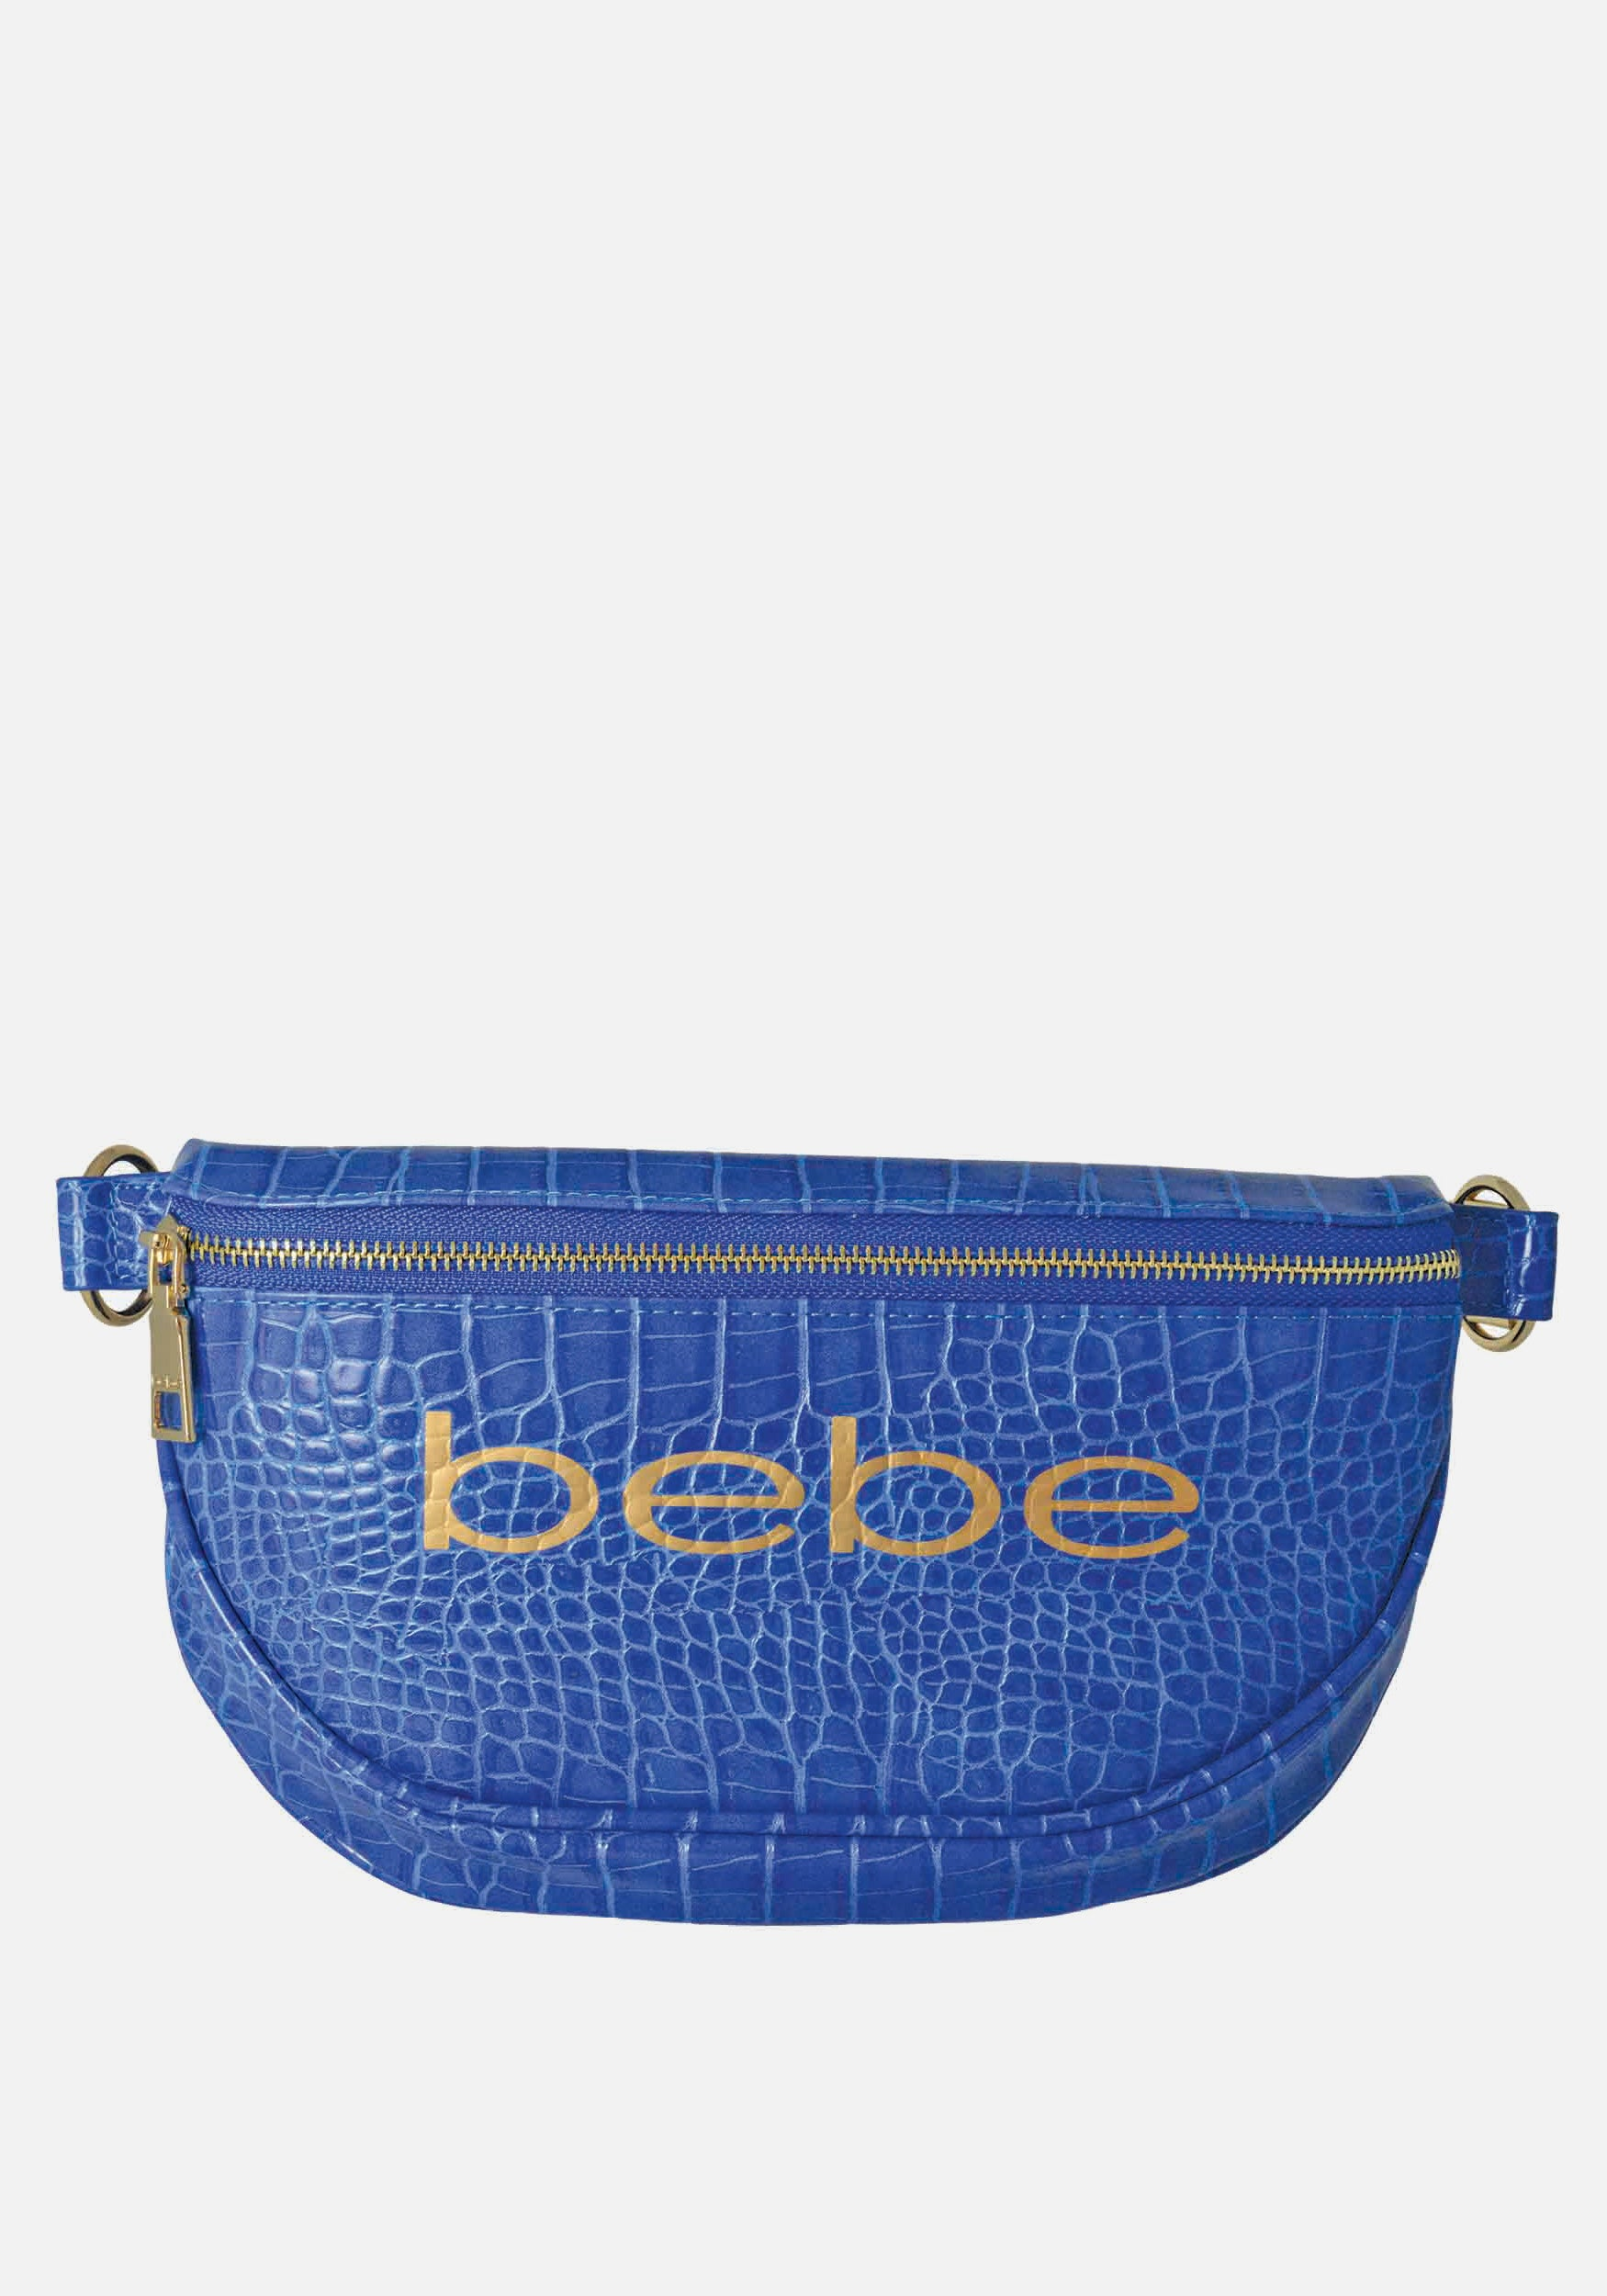 Bebe Women's Josephine Croco Convertible Sling in Blue Polyester